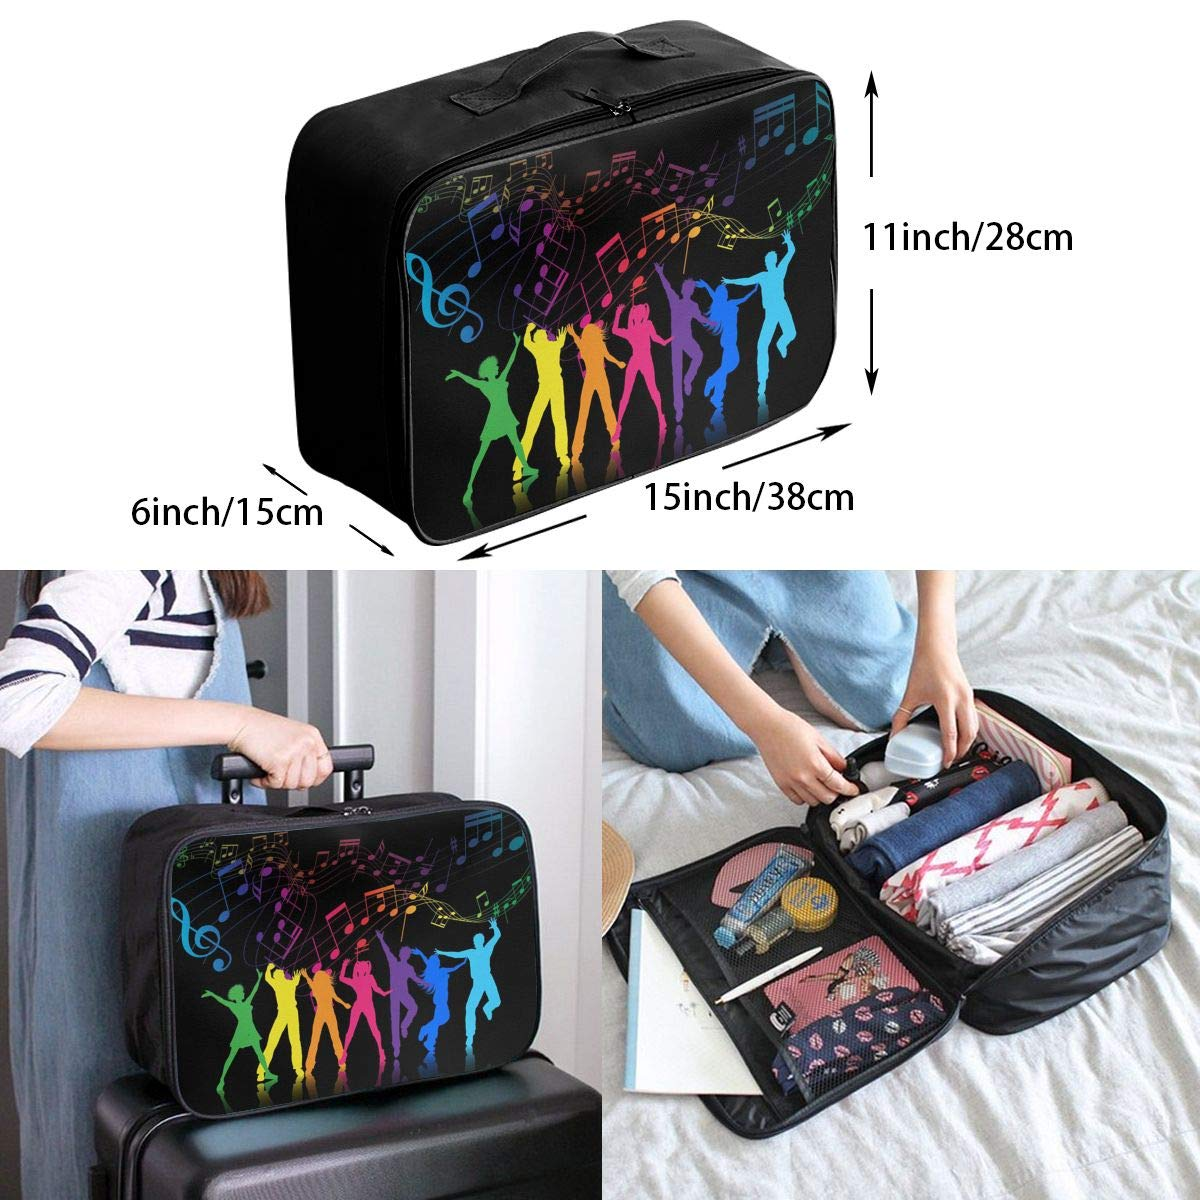 Travel Luggage Duffle Bag Lightweight Portable Handbag Colorful Music Notes Dancer Large Capacity Waterproof Foldable Storage Tote